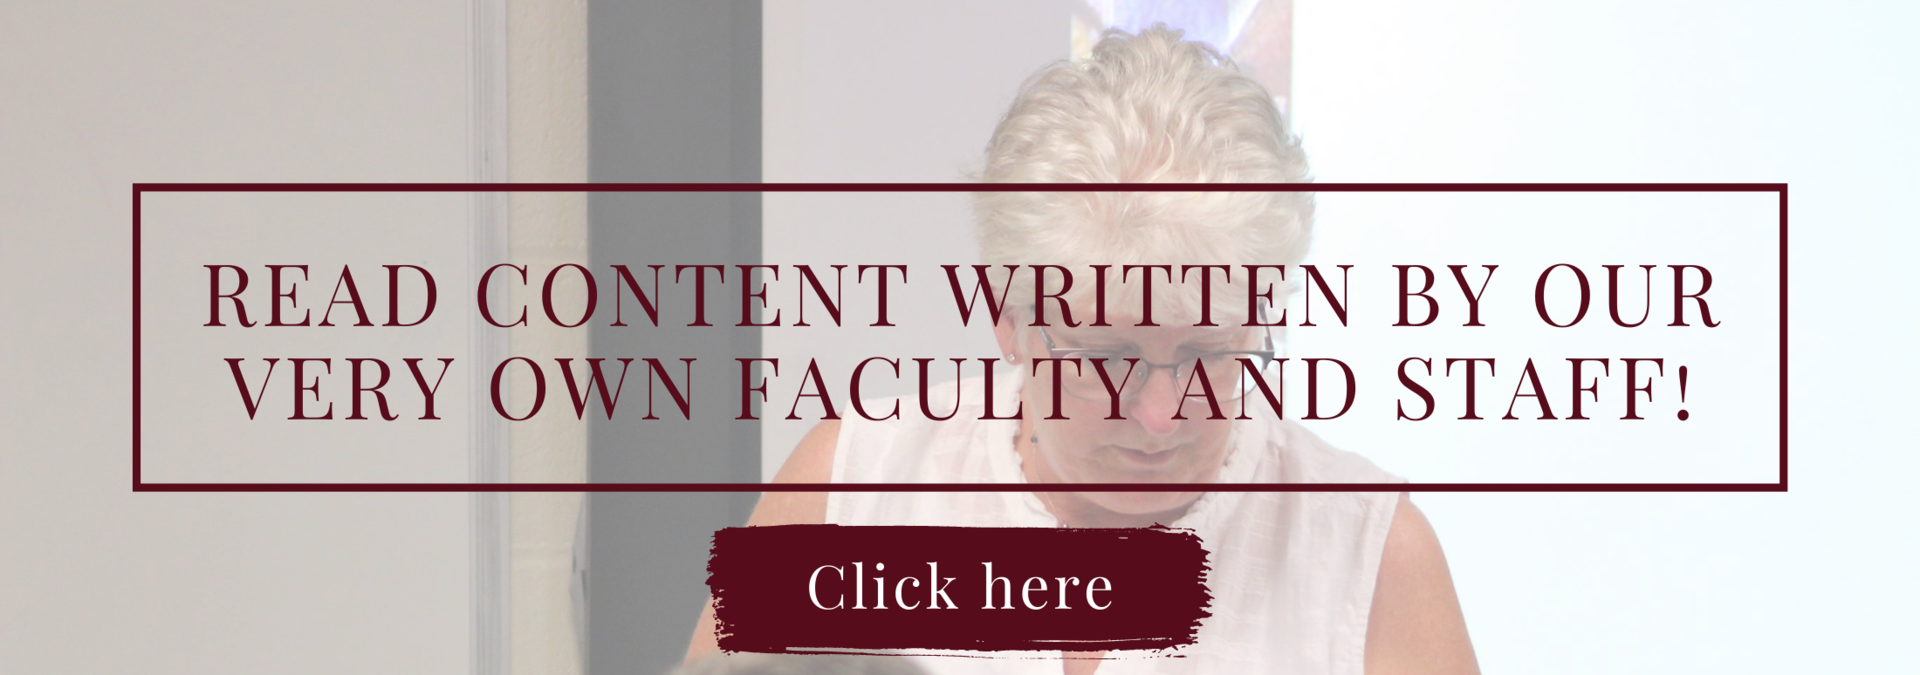 Read content written by our very own faculty and staff!